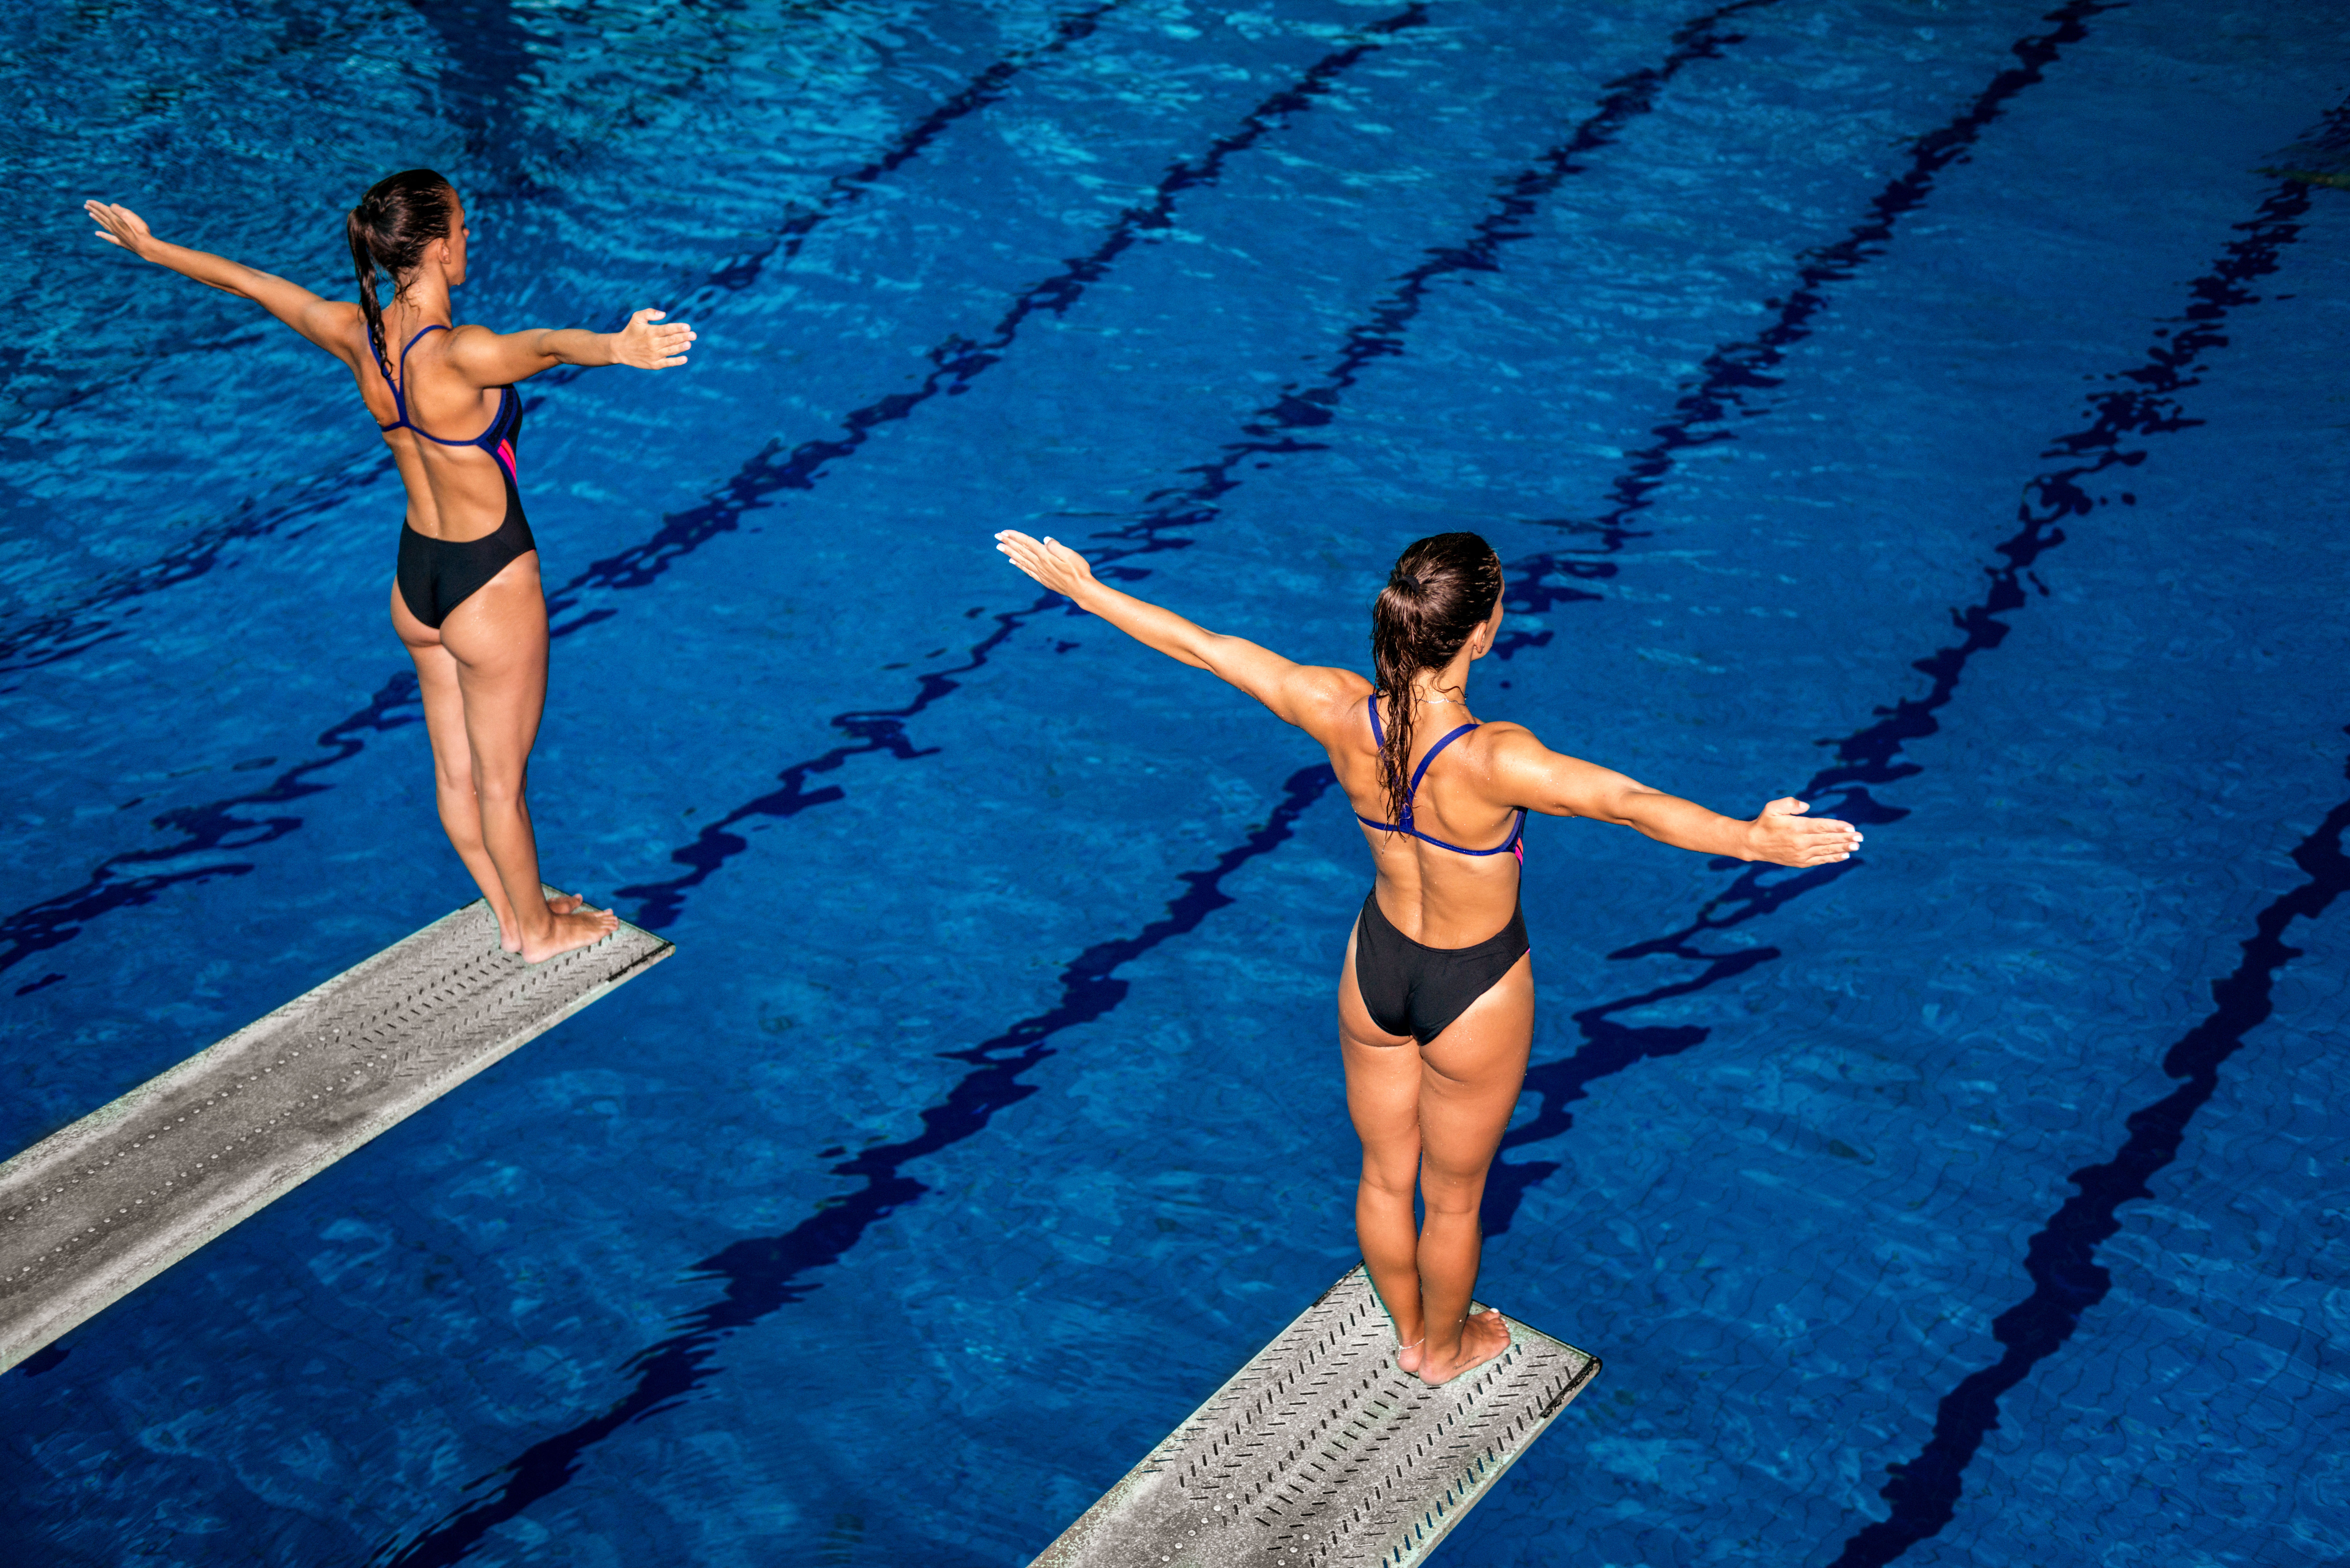 Two people diving in to a swimming pool